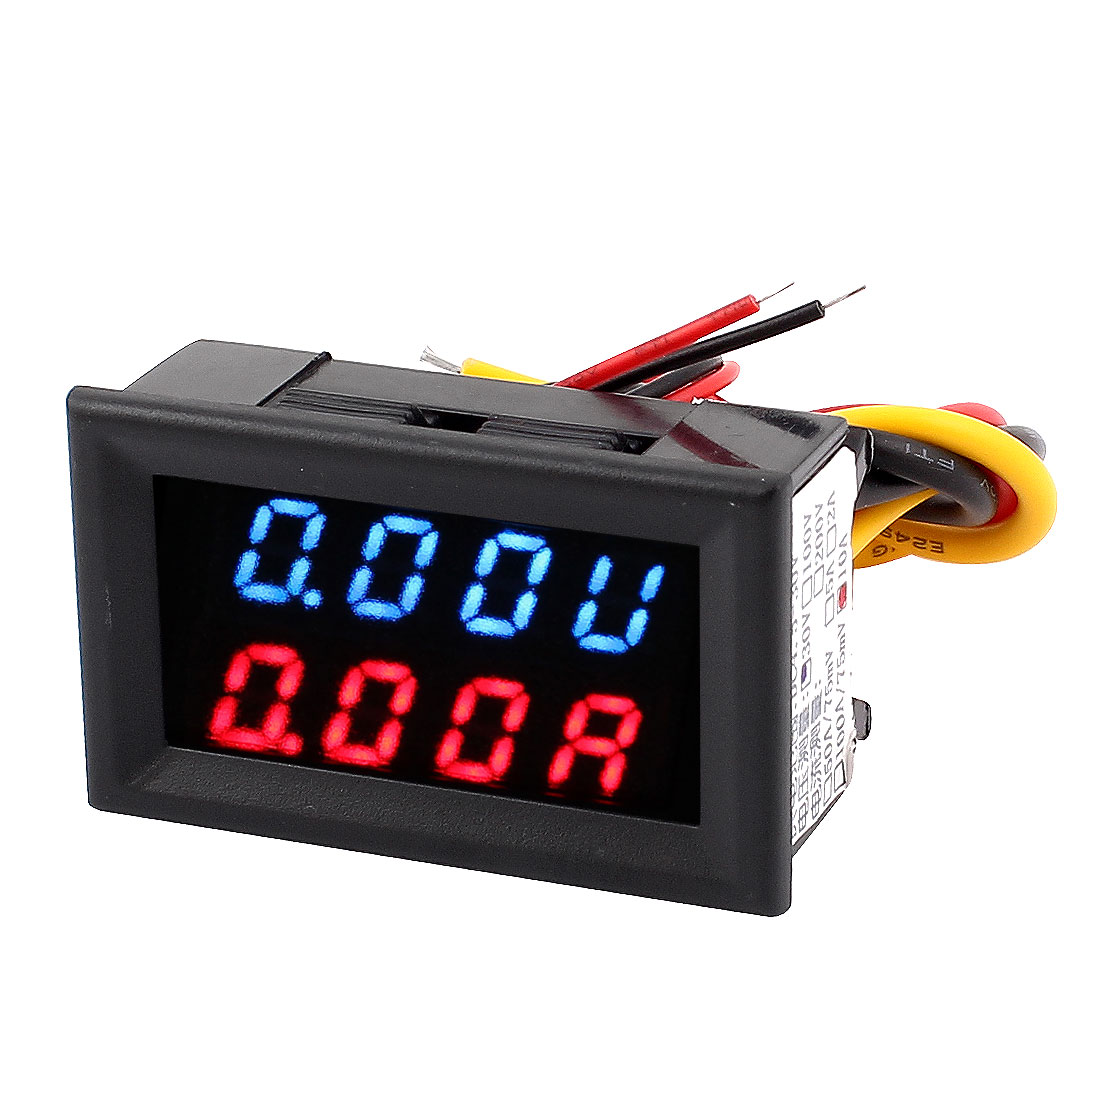 DC 0-30V 0-10A Dual LED Digital Mobile Battery Detector Voltage Current Meter